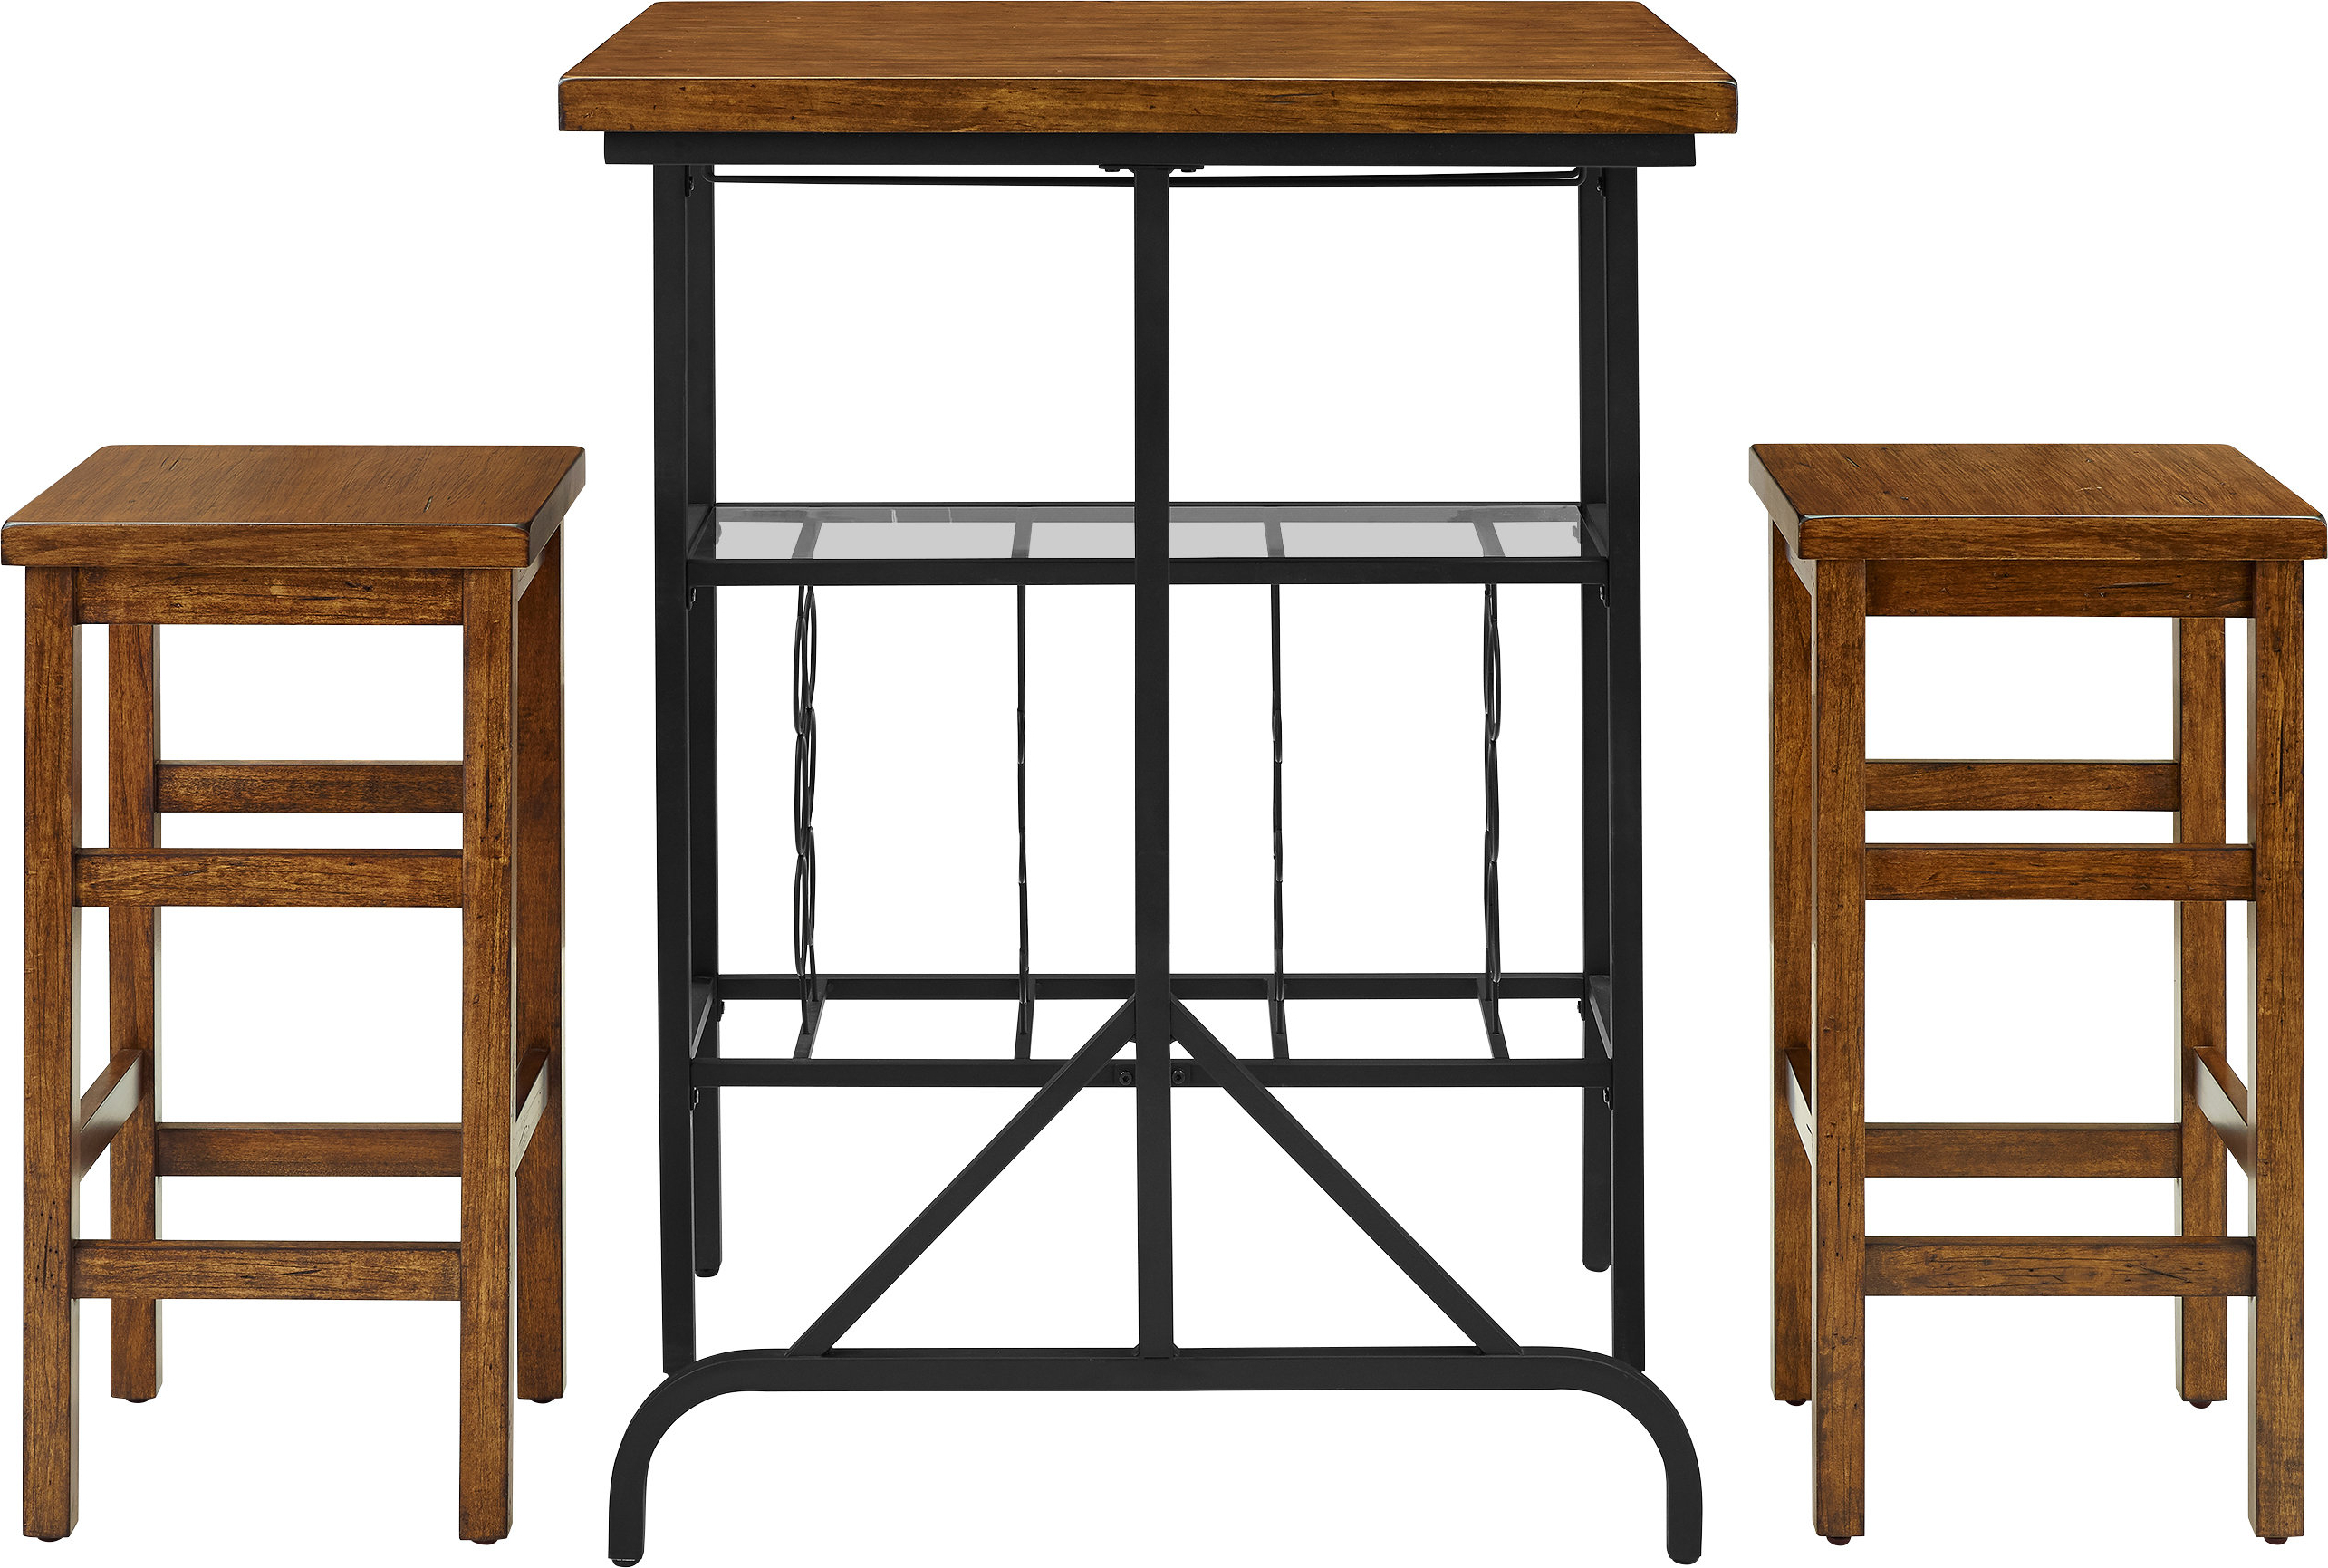 Fashionable Maloney 3 Piece Breakfast Nook Dining Sets Throughout Loon Peak Ordway 3 Piece Dining Set & Reviews (View 13 of 25)